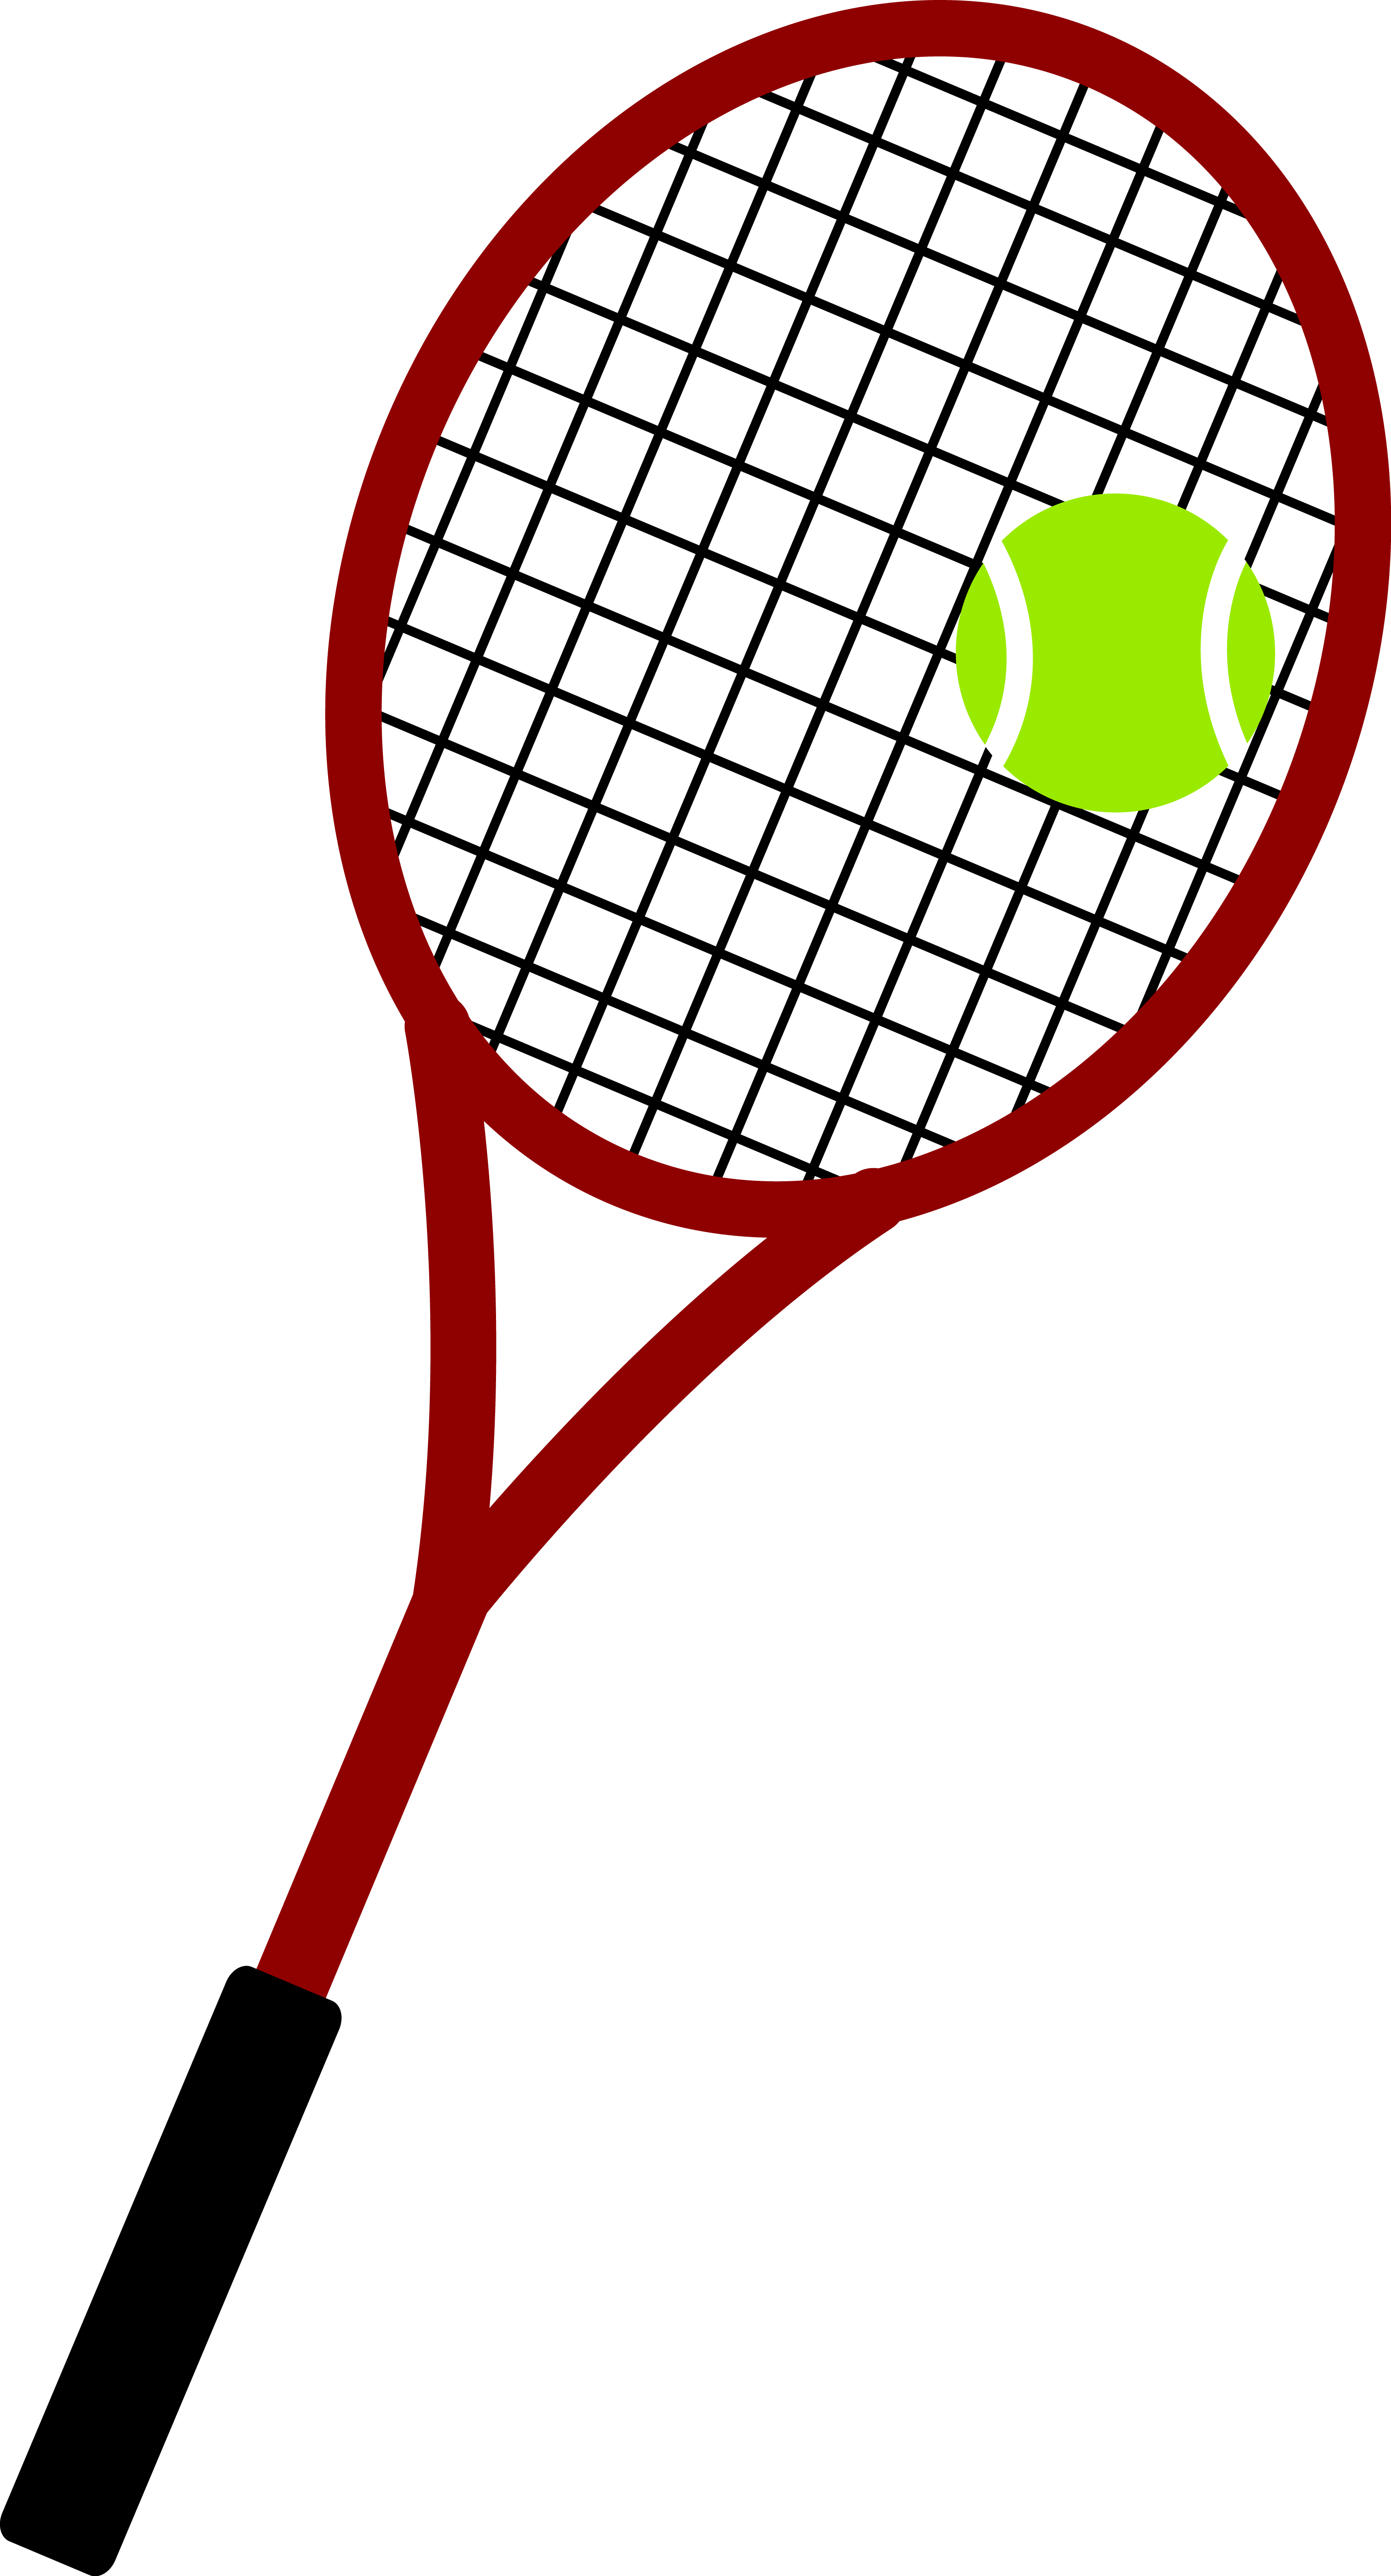 tennis clipart free download clipart panda free clipart images rh clipartpanda com free tennis clipart downloads free clipart tennis ball